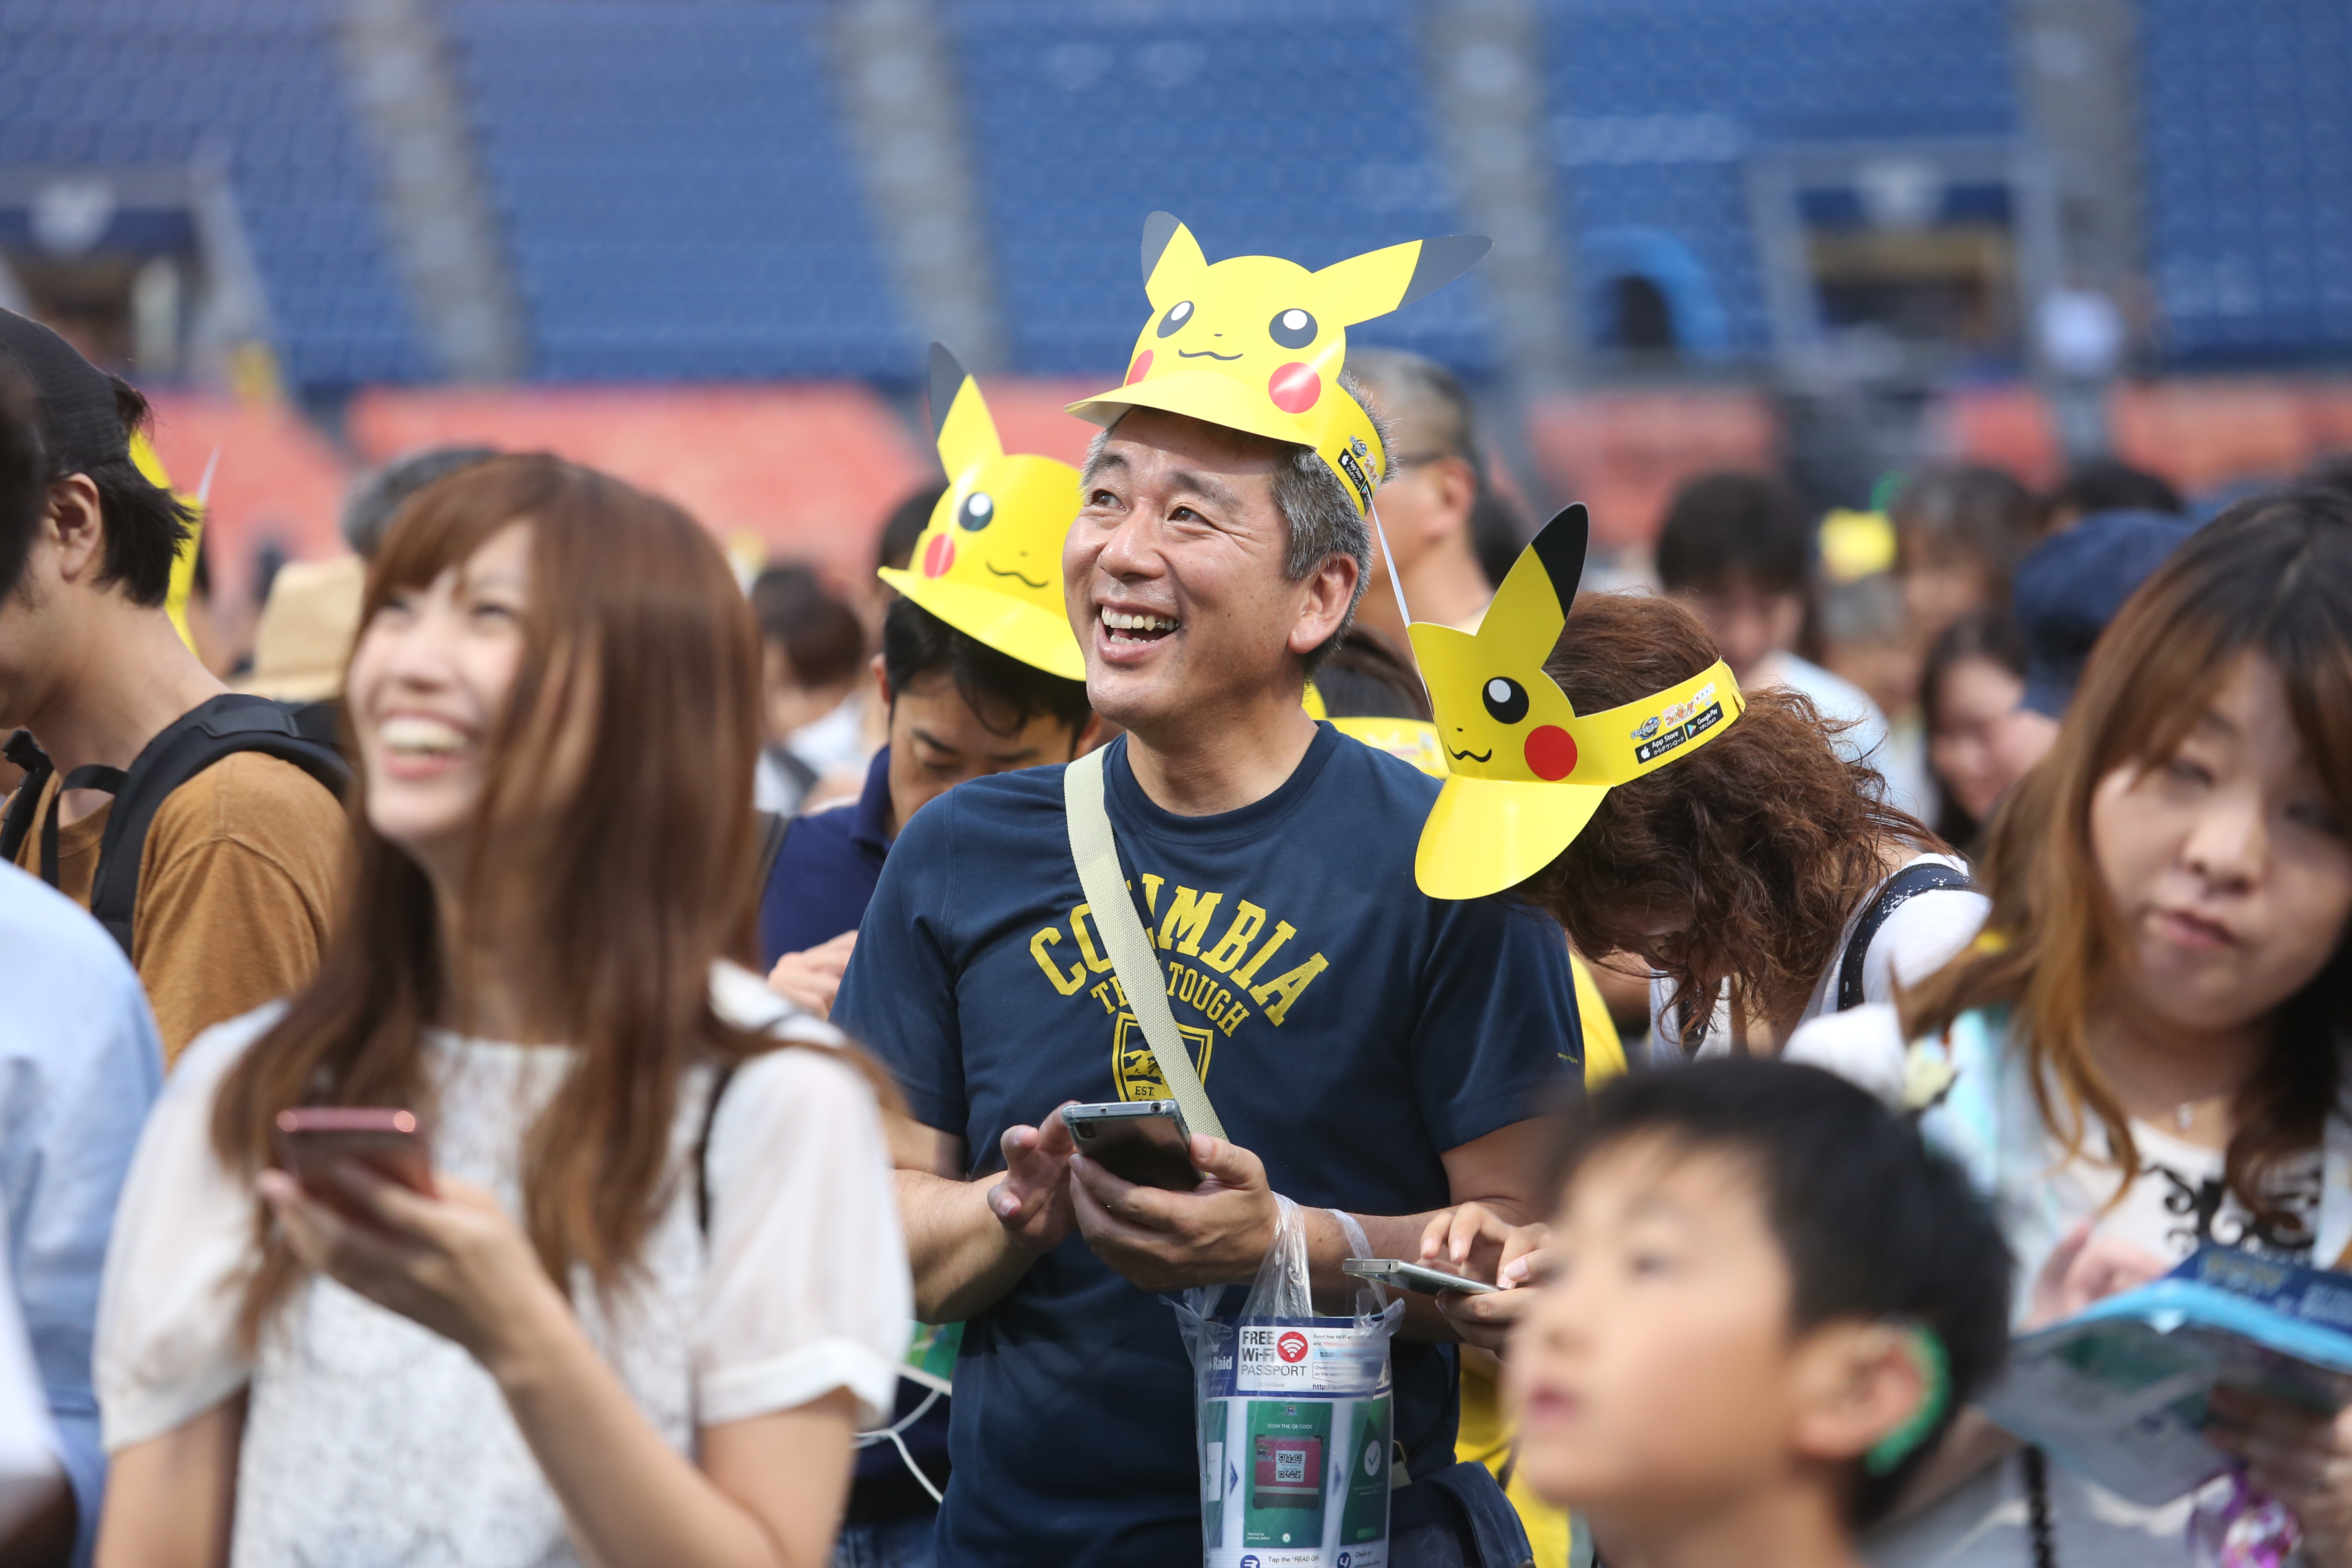 2M Players, Seven Days, One City - Pikachu Outbreak & The